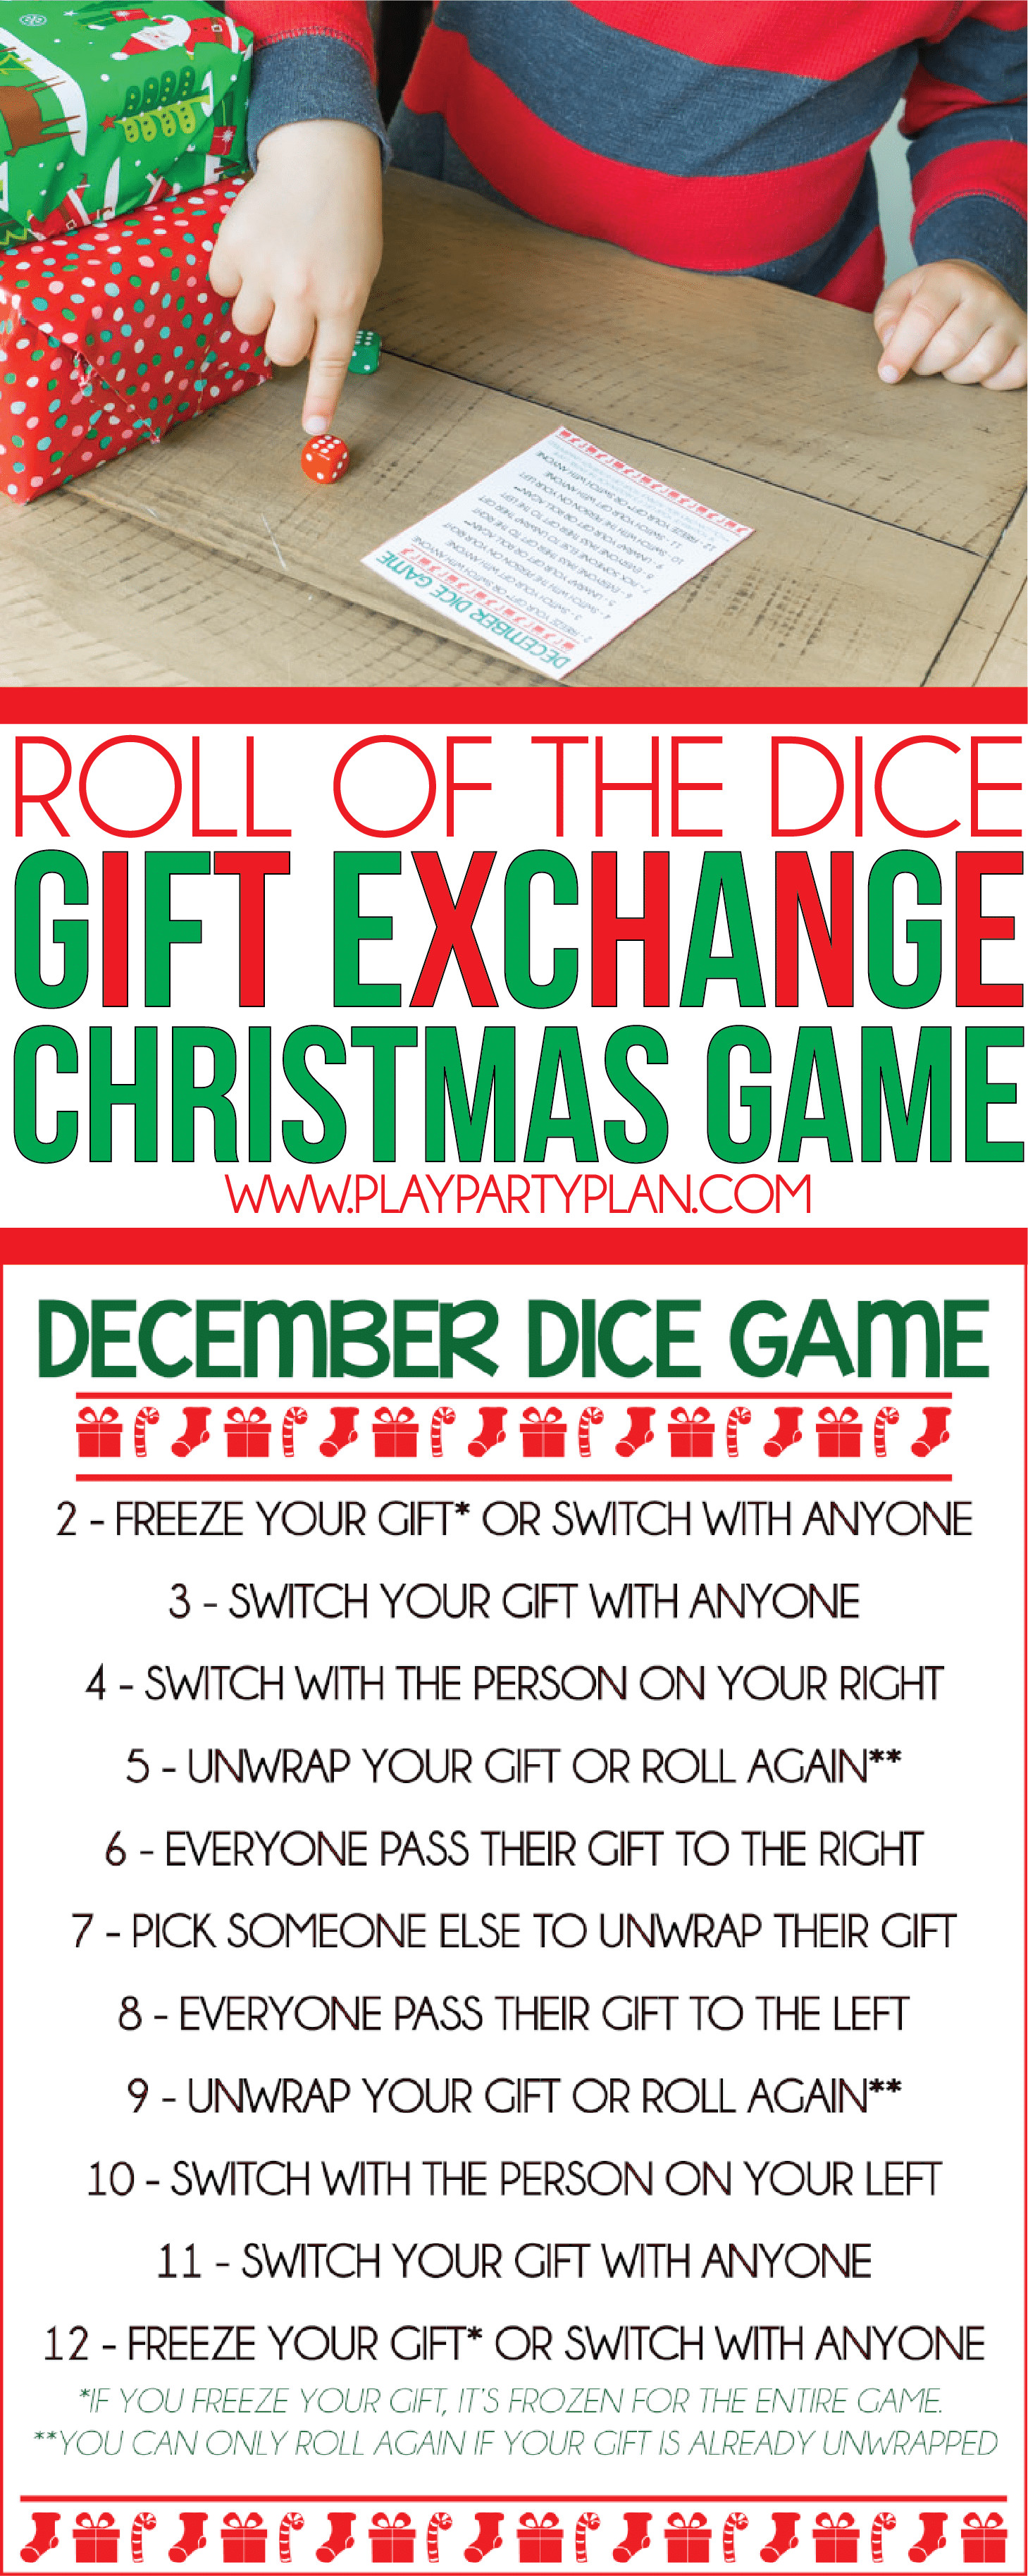 Christmas Gift Exchange Ideas  11 Fun & Creative Gift Exchange Games You Have to Try